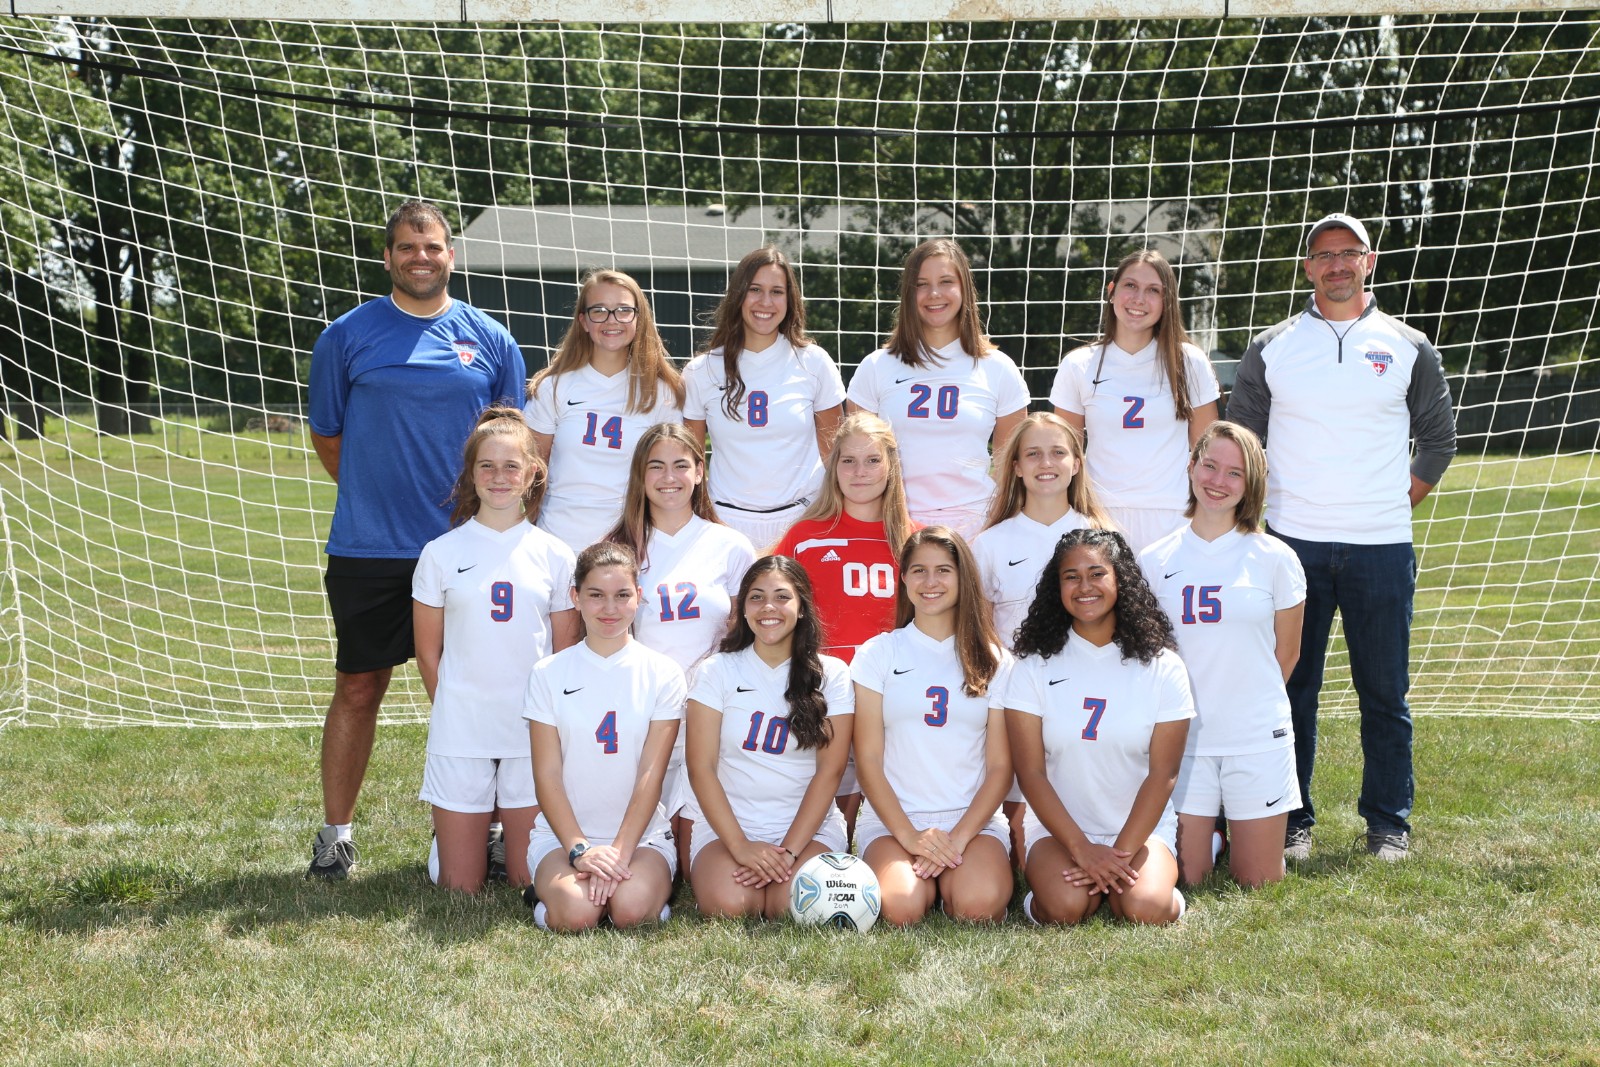 Girls Soccer Greater Cleveland Awards Announced